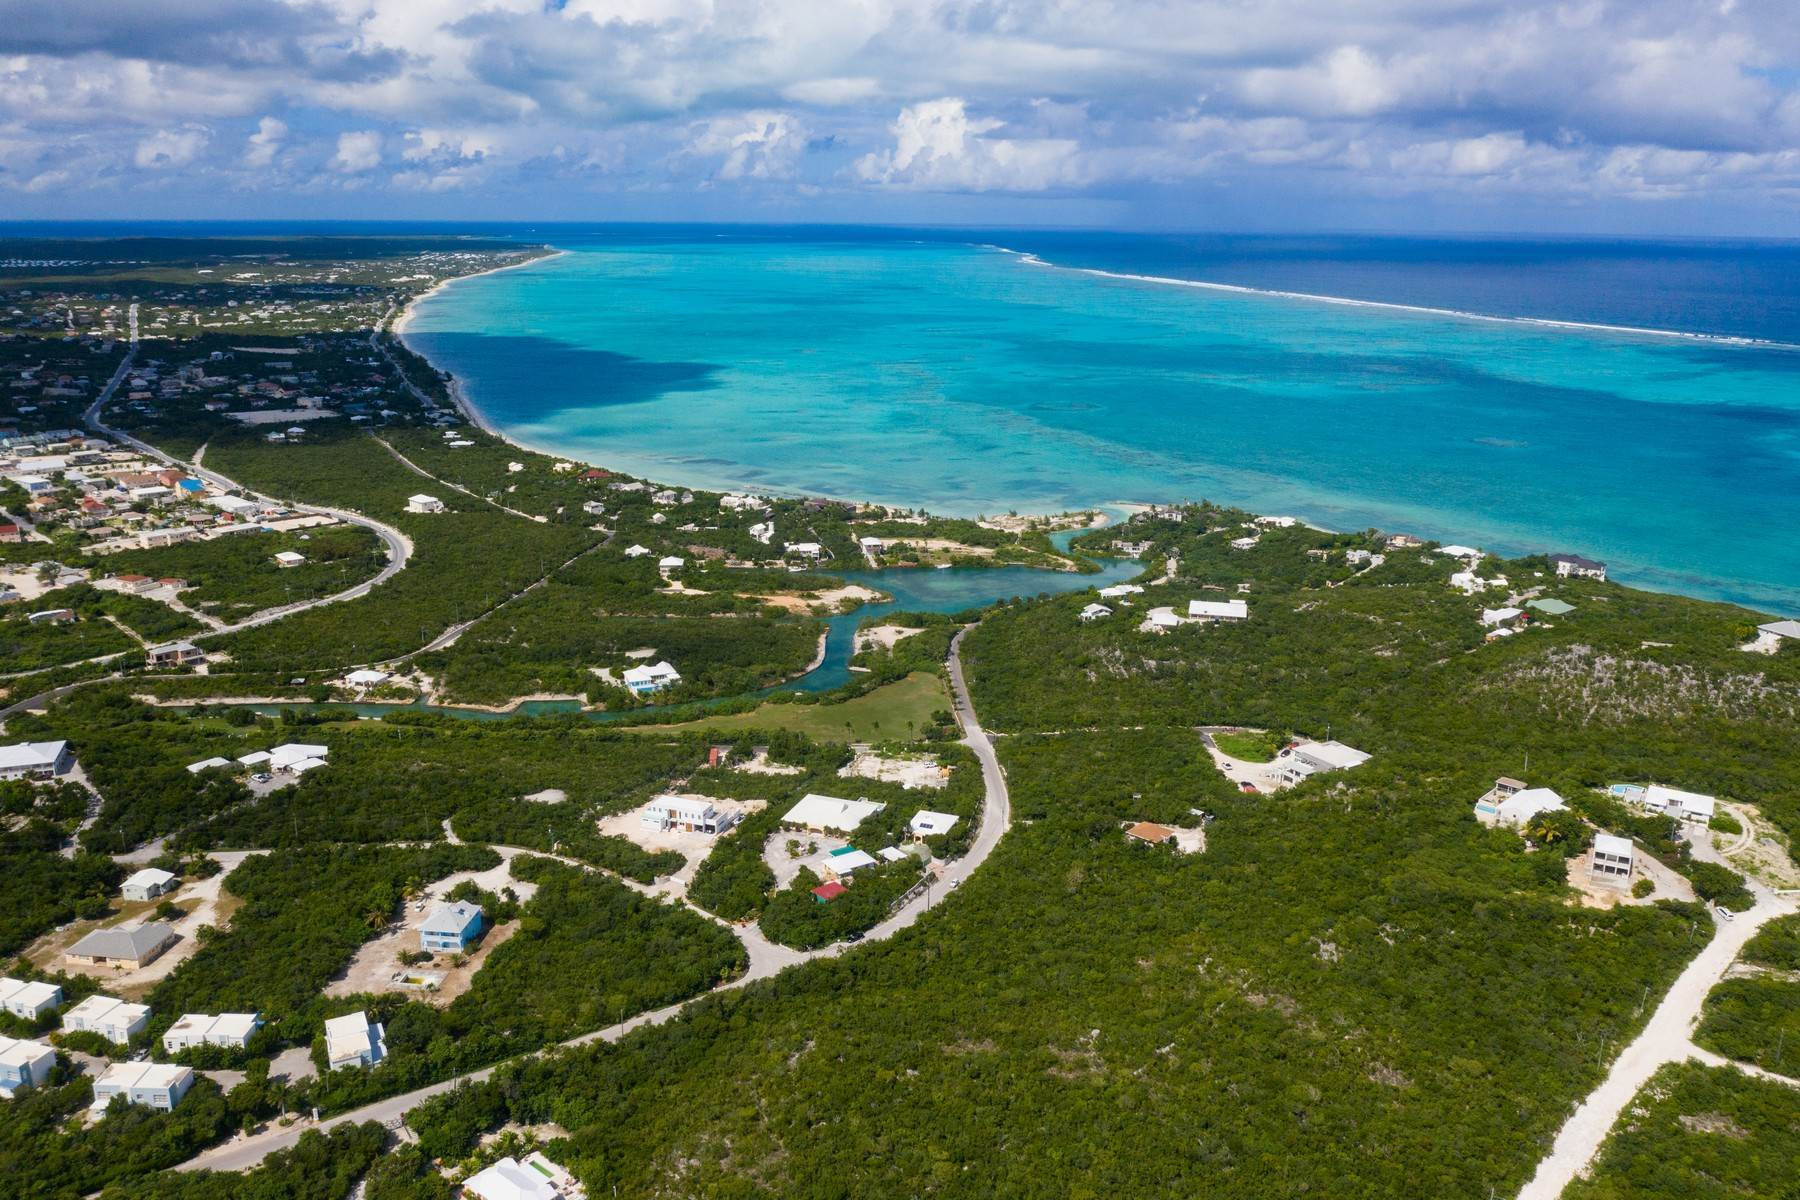 Terreno en Oceanview Thompson Cove Lot Thompson Cove, Providenciales Islas Turcas y Caicos